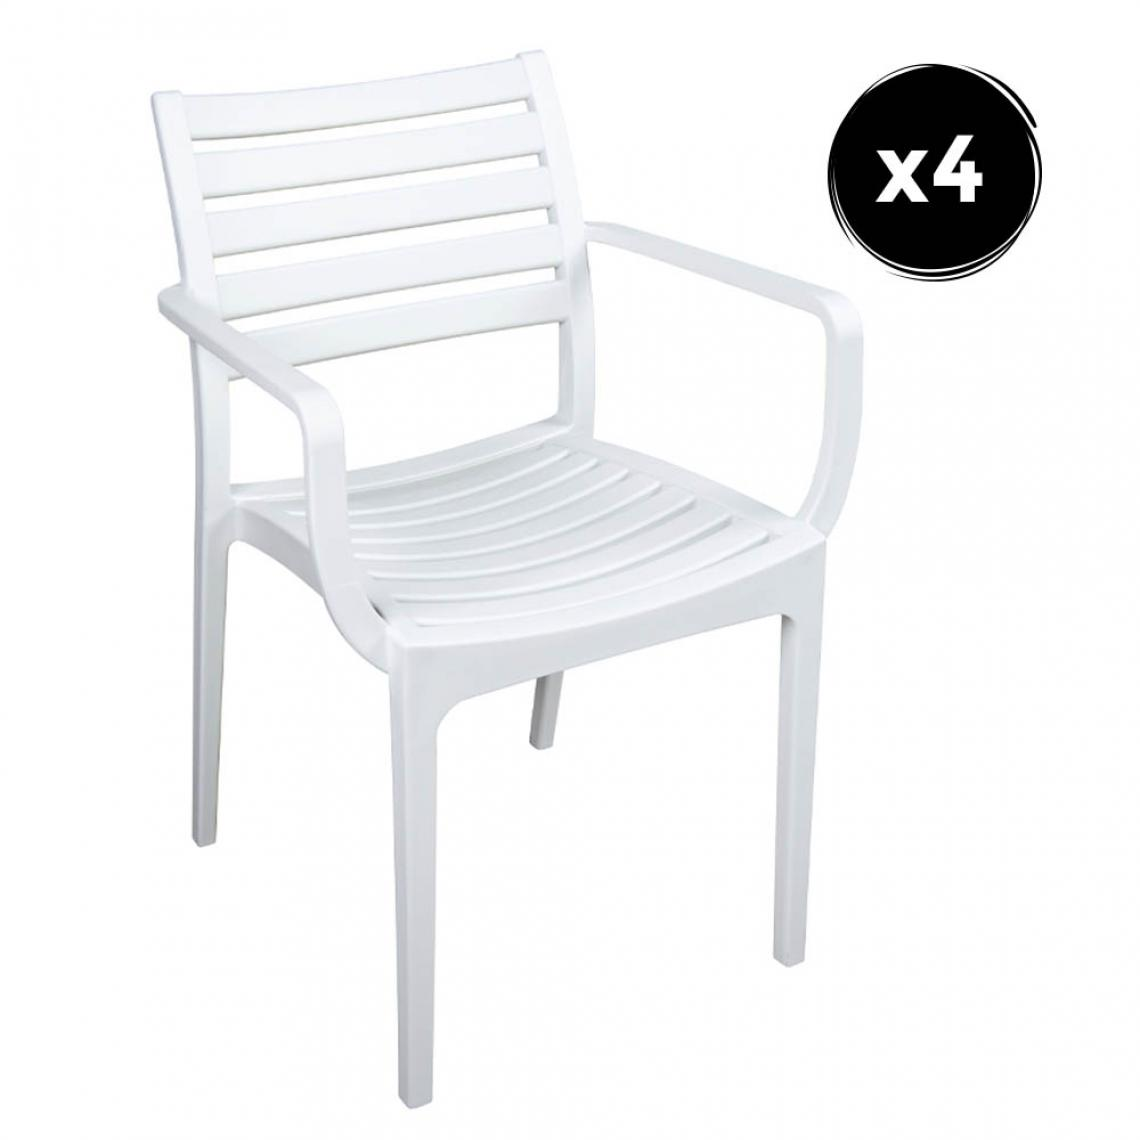 Imperial Relax Pack 4 Fauteuil Quebec Blanc Polipropilene